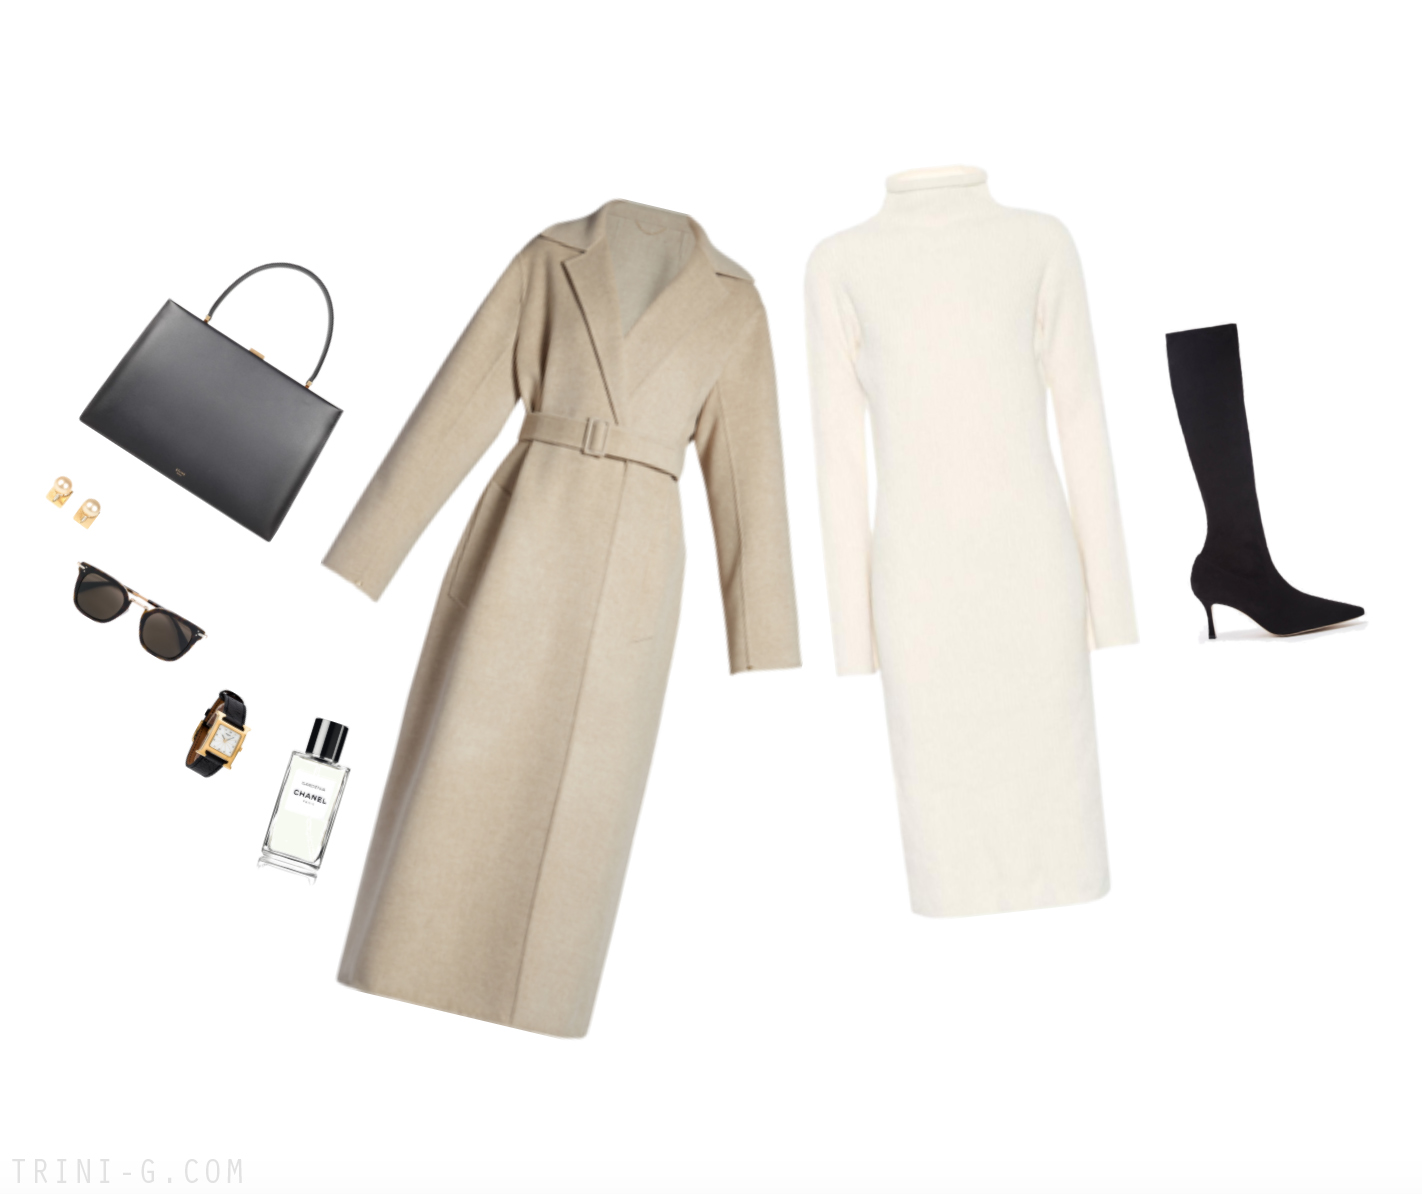 Trini | The Row dress Manolo Blahnik boots